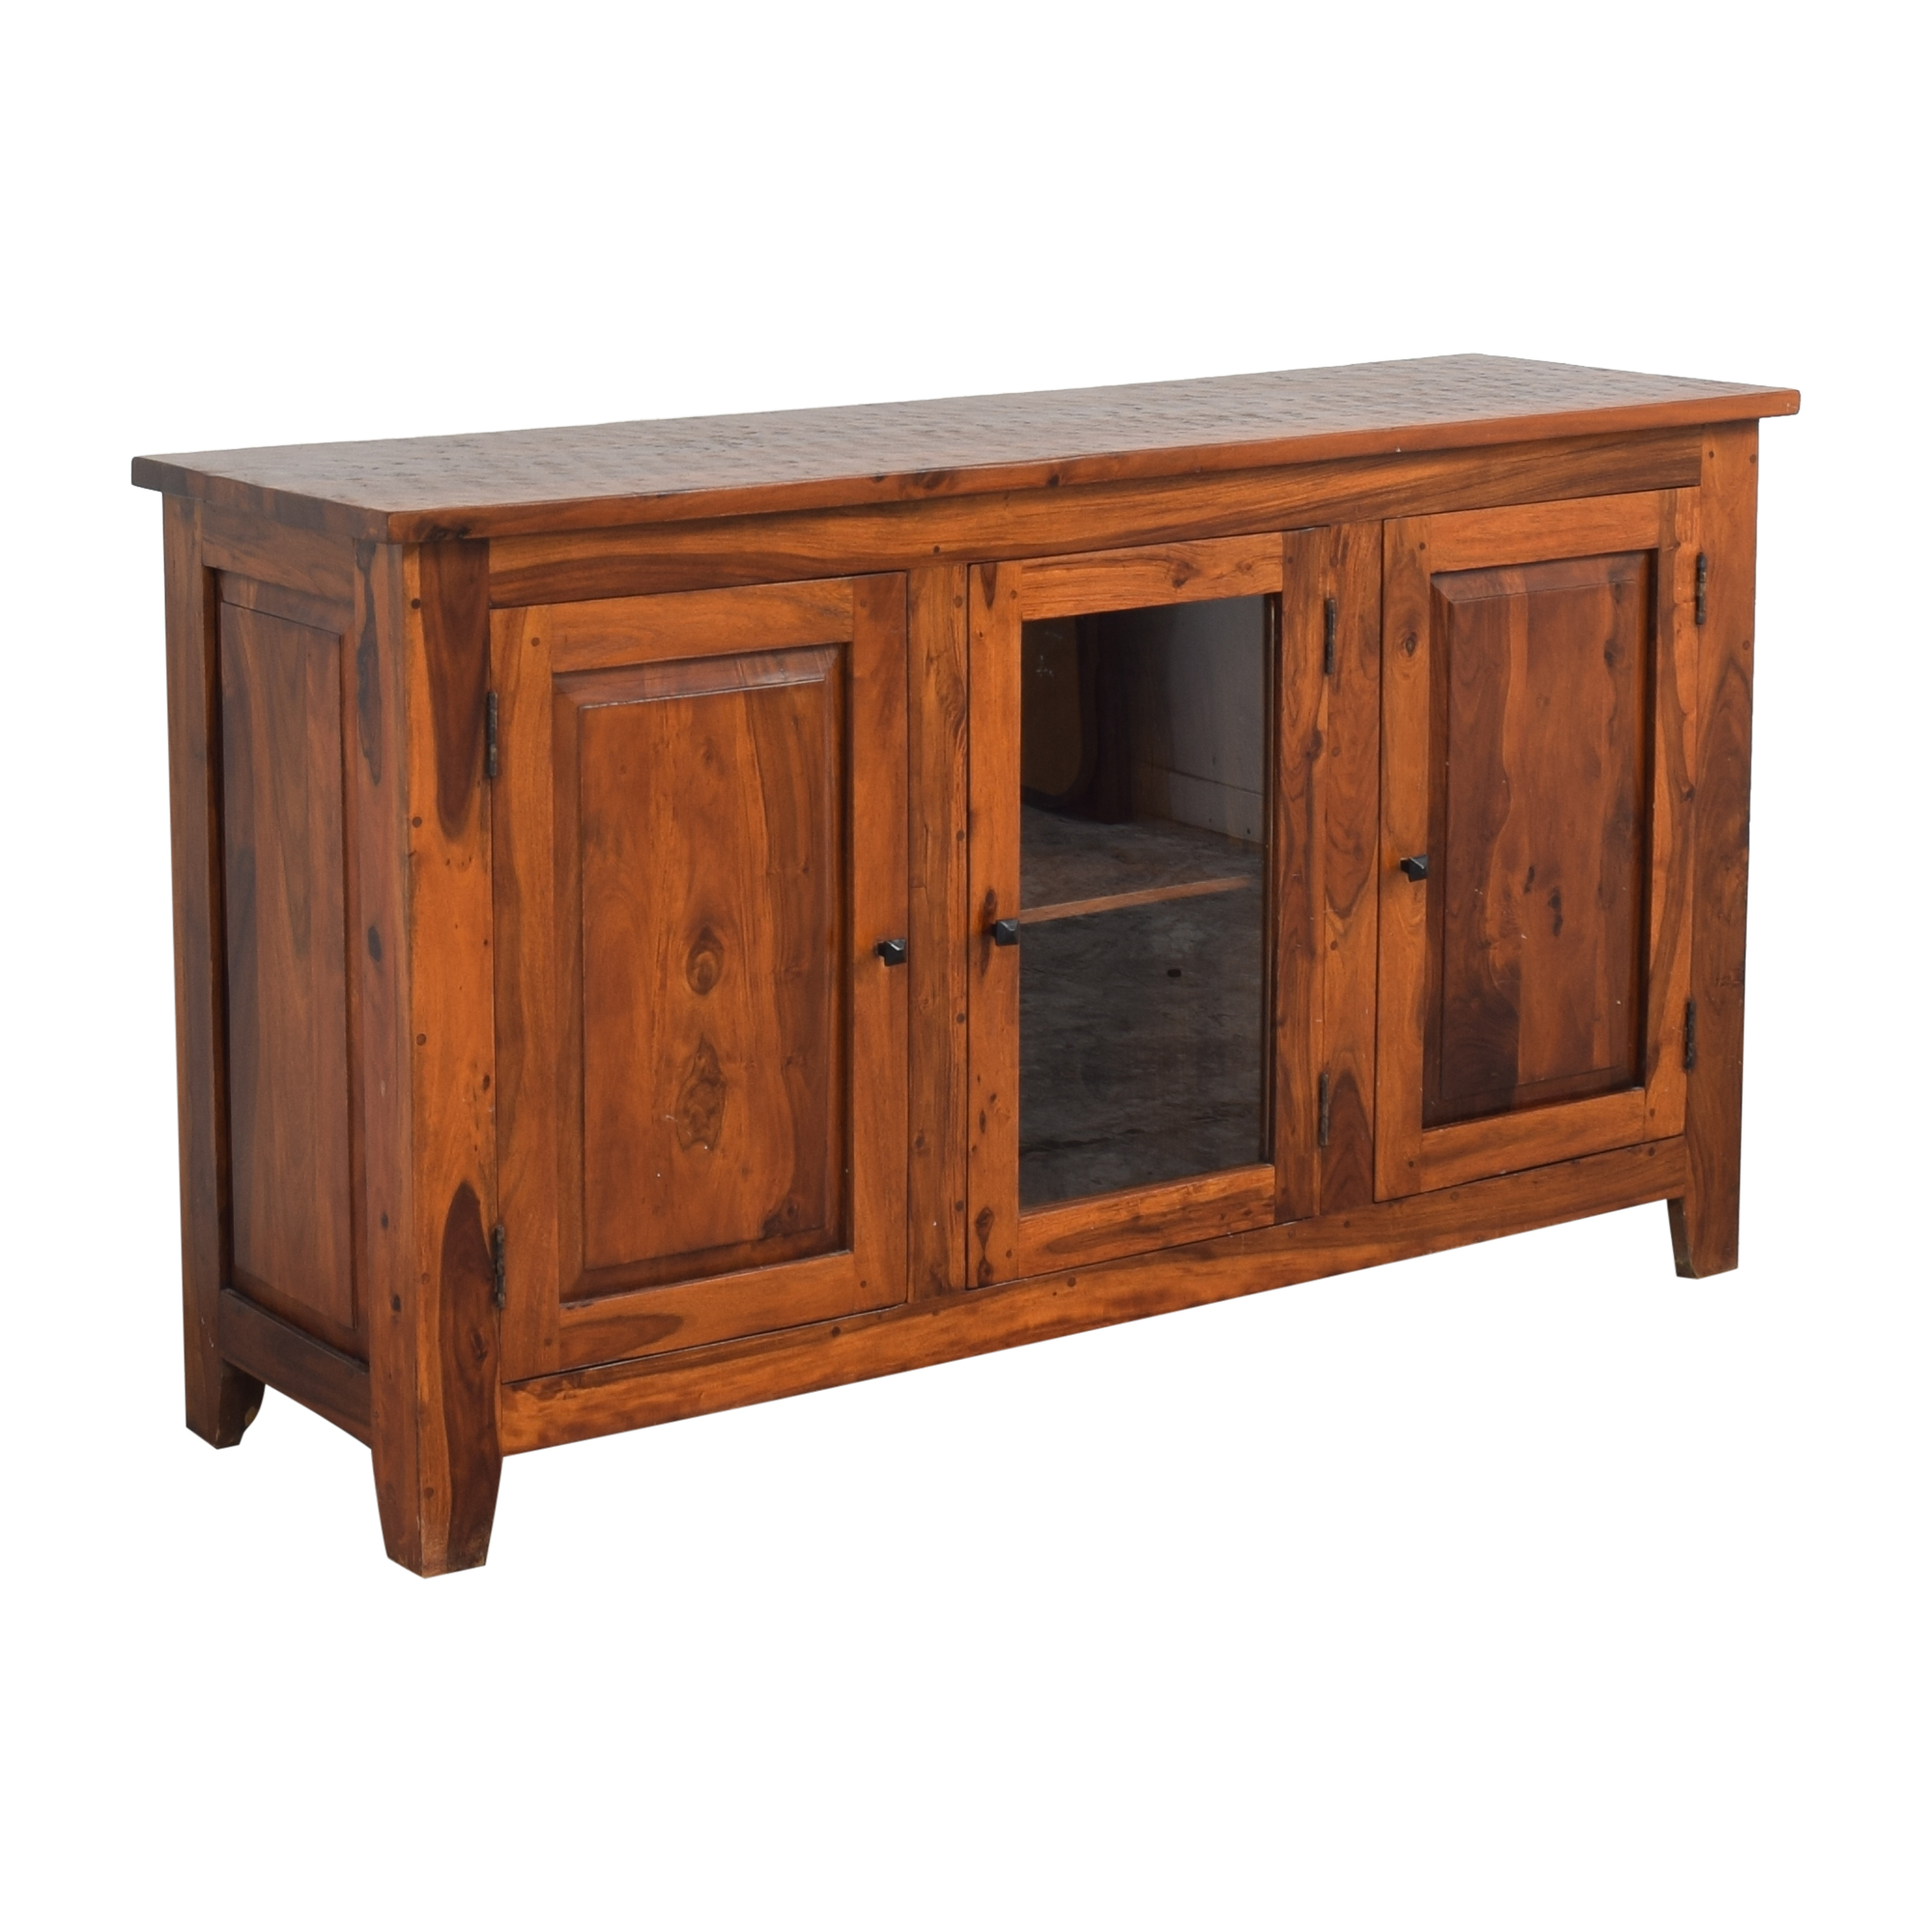 Lillian August Lillian August Provence Sideboard on sale